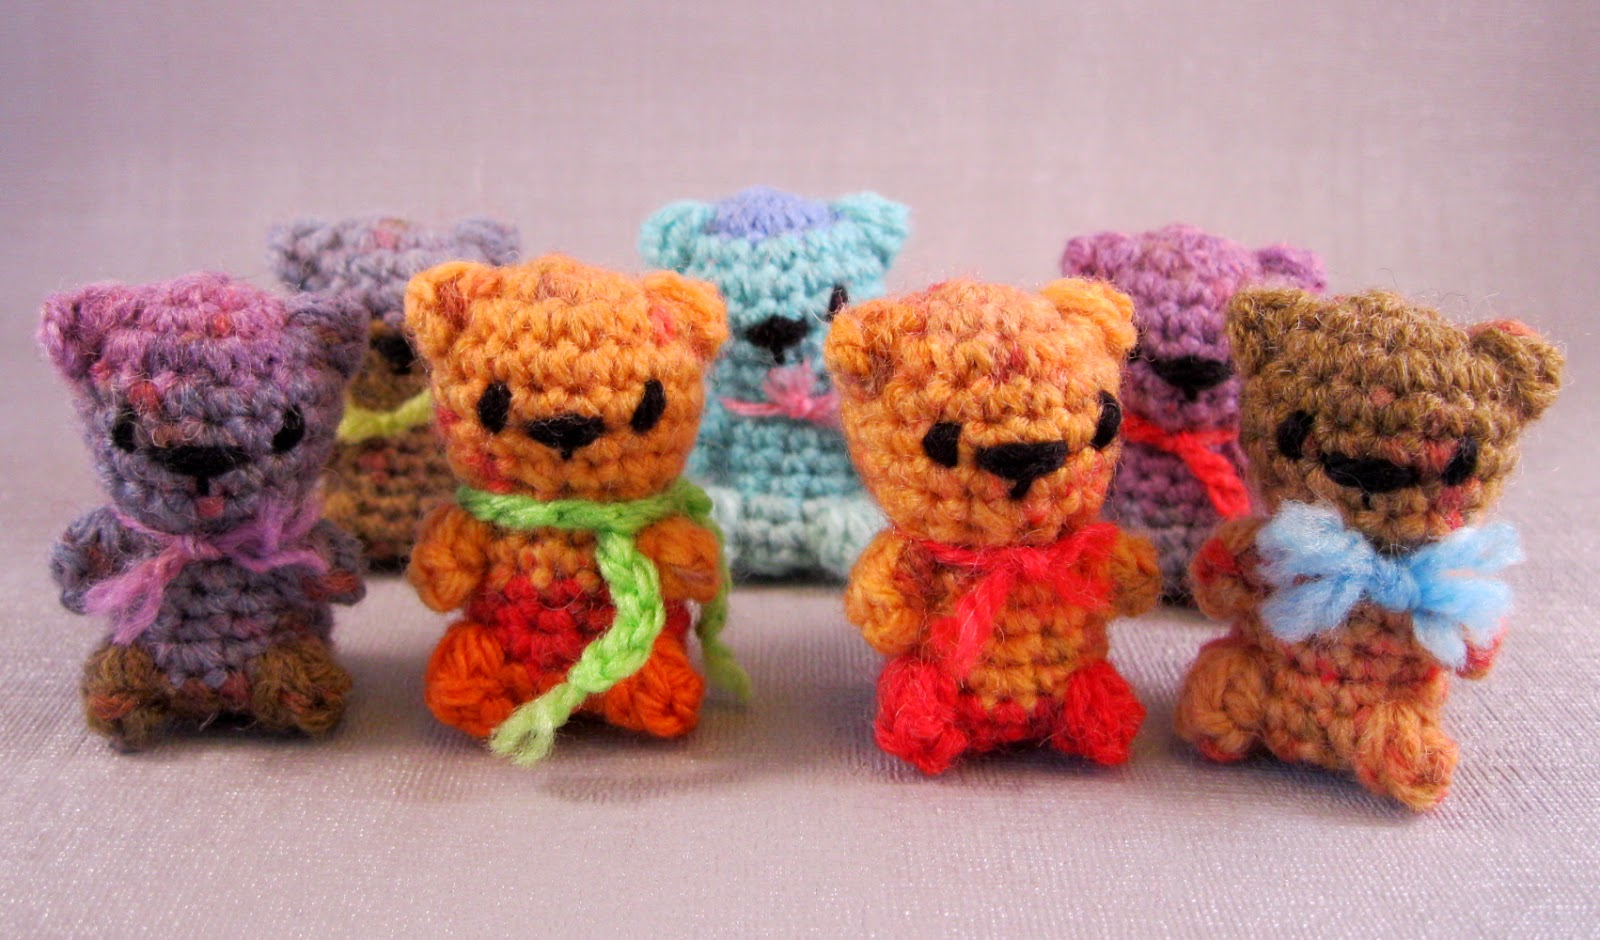 Amigurumi Teddy Bear Free Patterns : Lucyravenscar crochet creatures: mini teddies free amigurumi